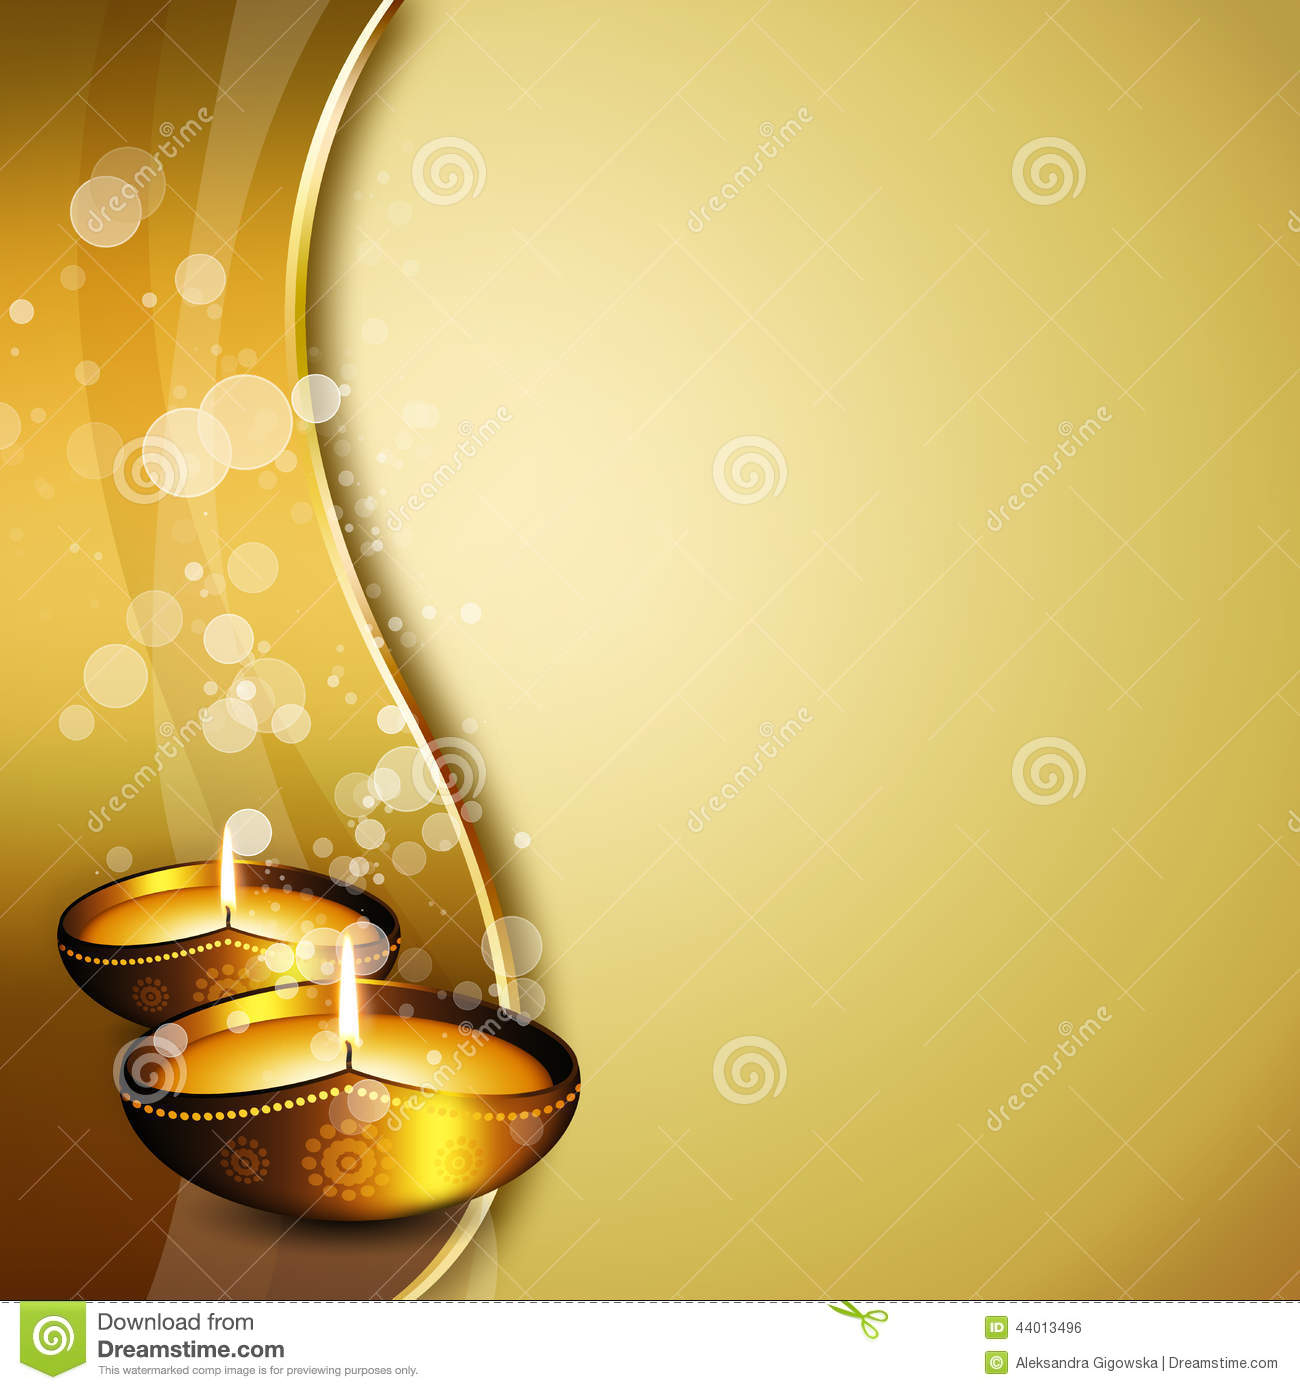 diwali oil lamps with place for text stock illustration